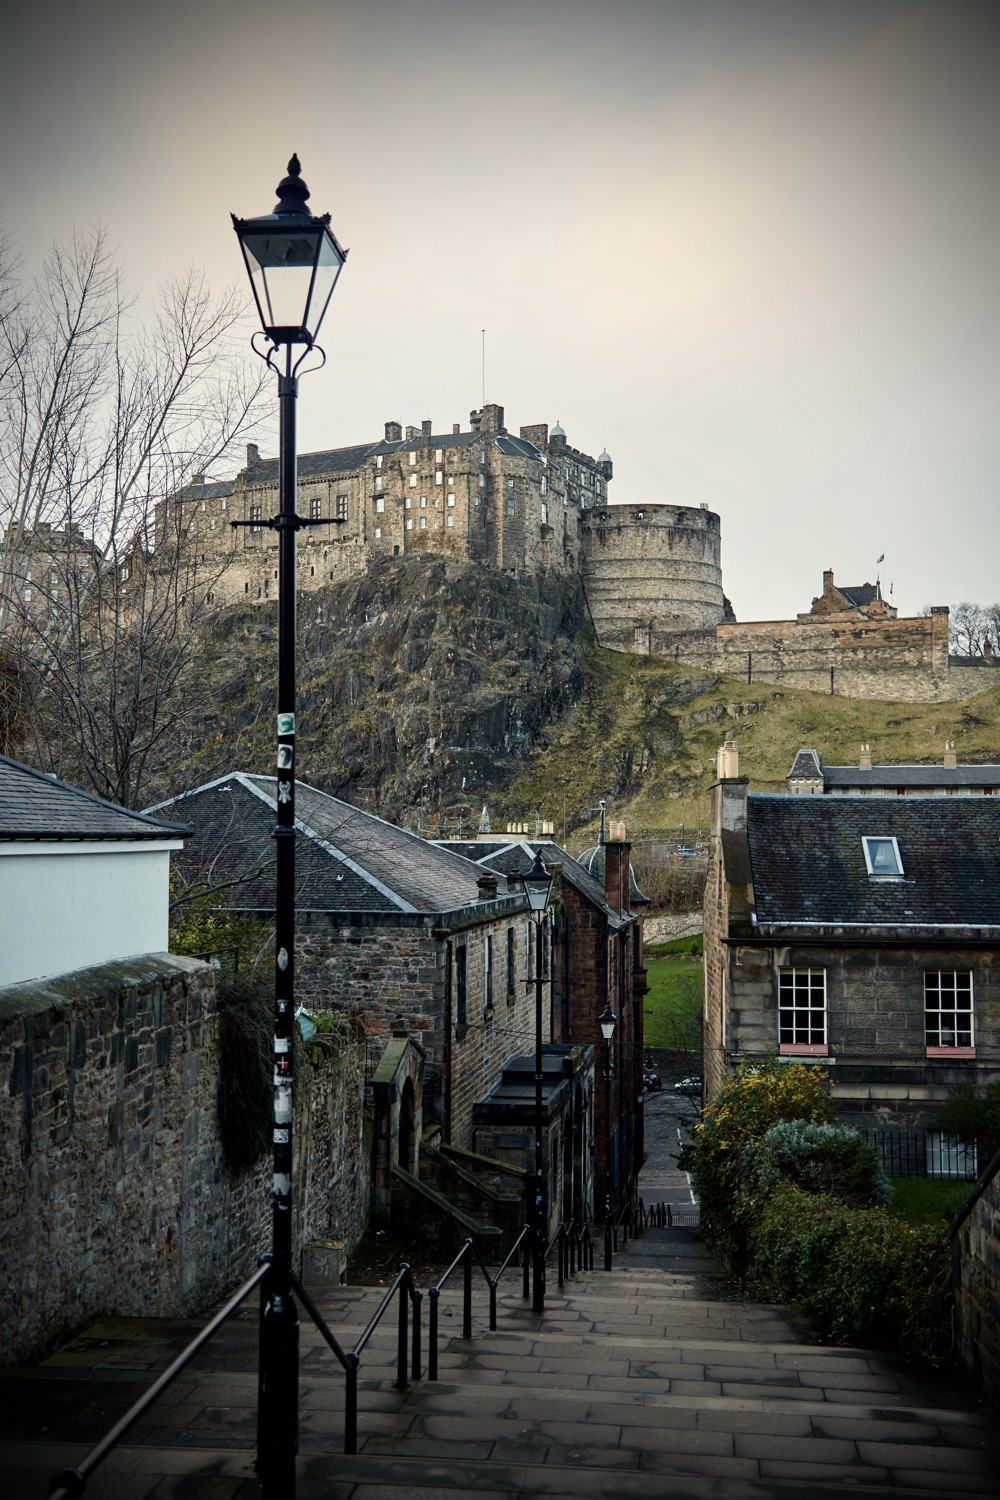 20151211_Edinburgh_236A3567 copy.jpg